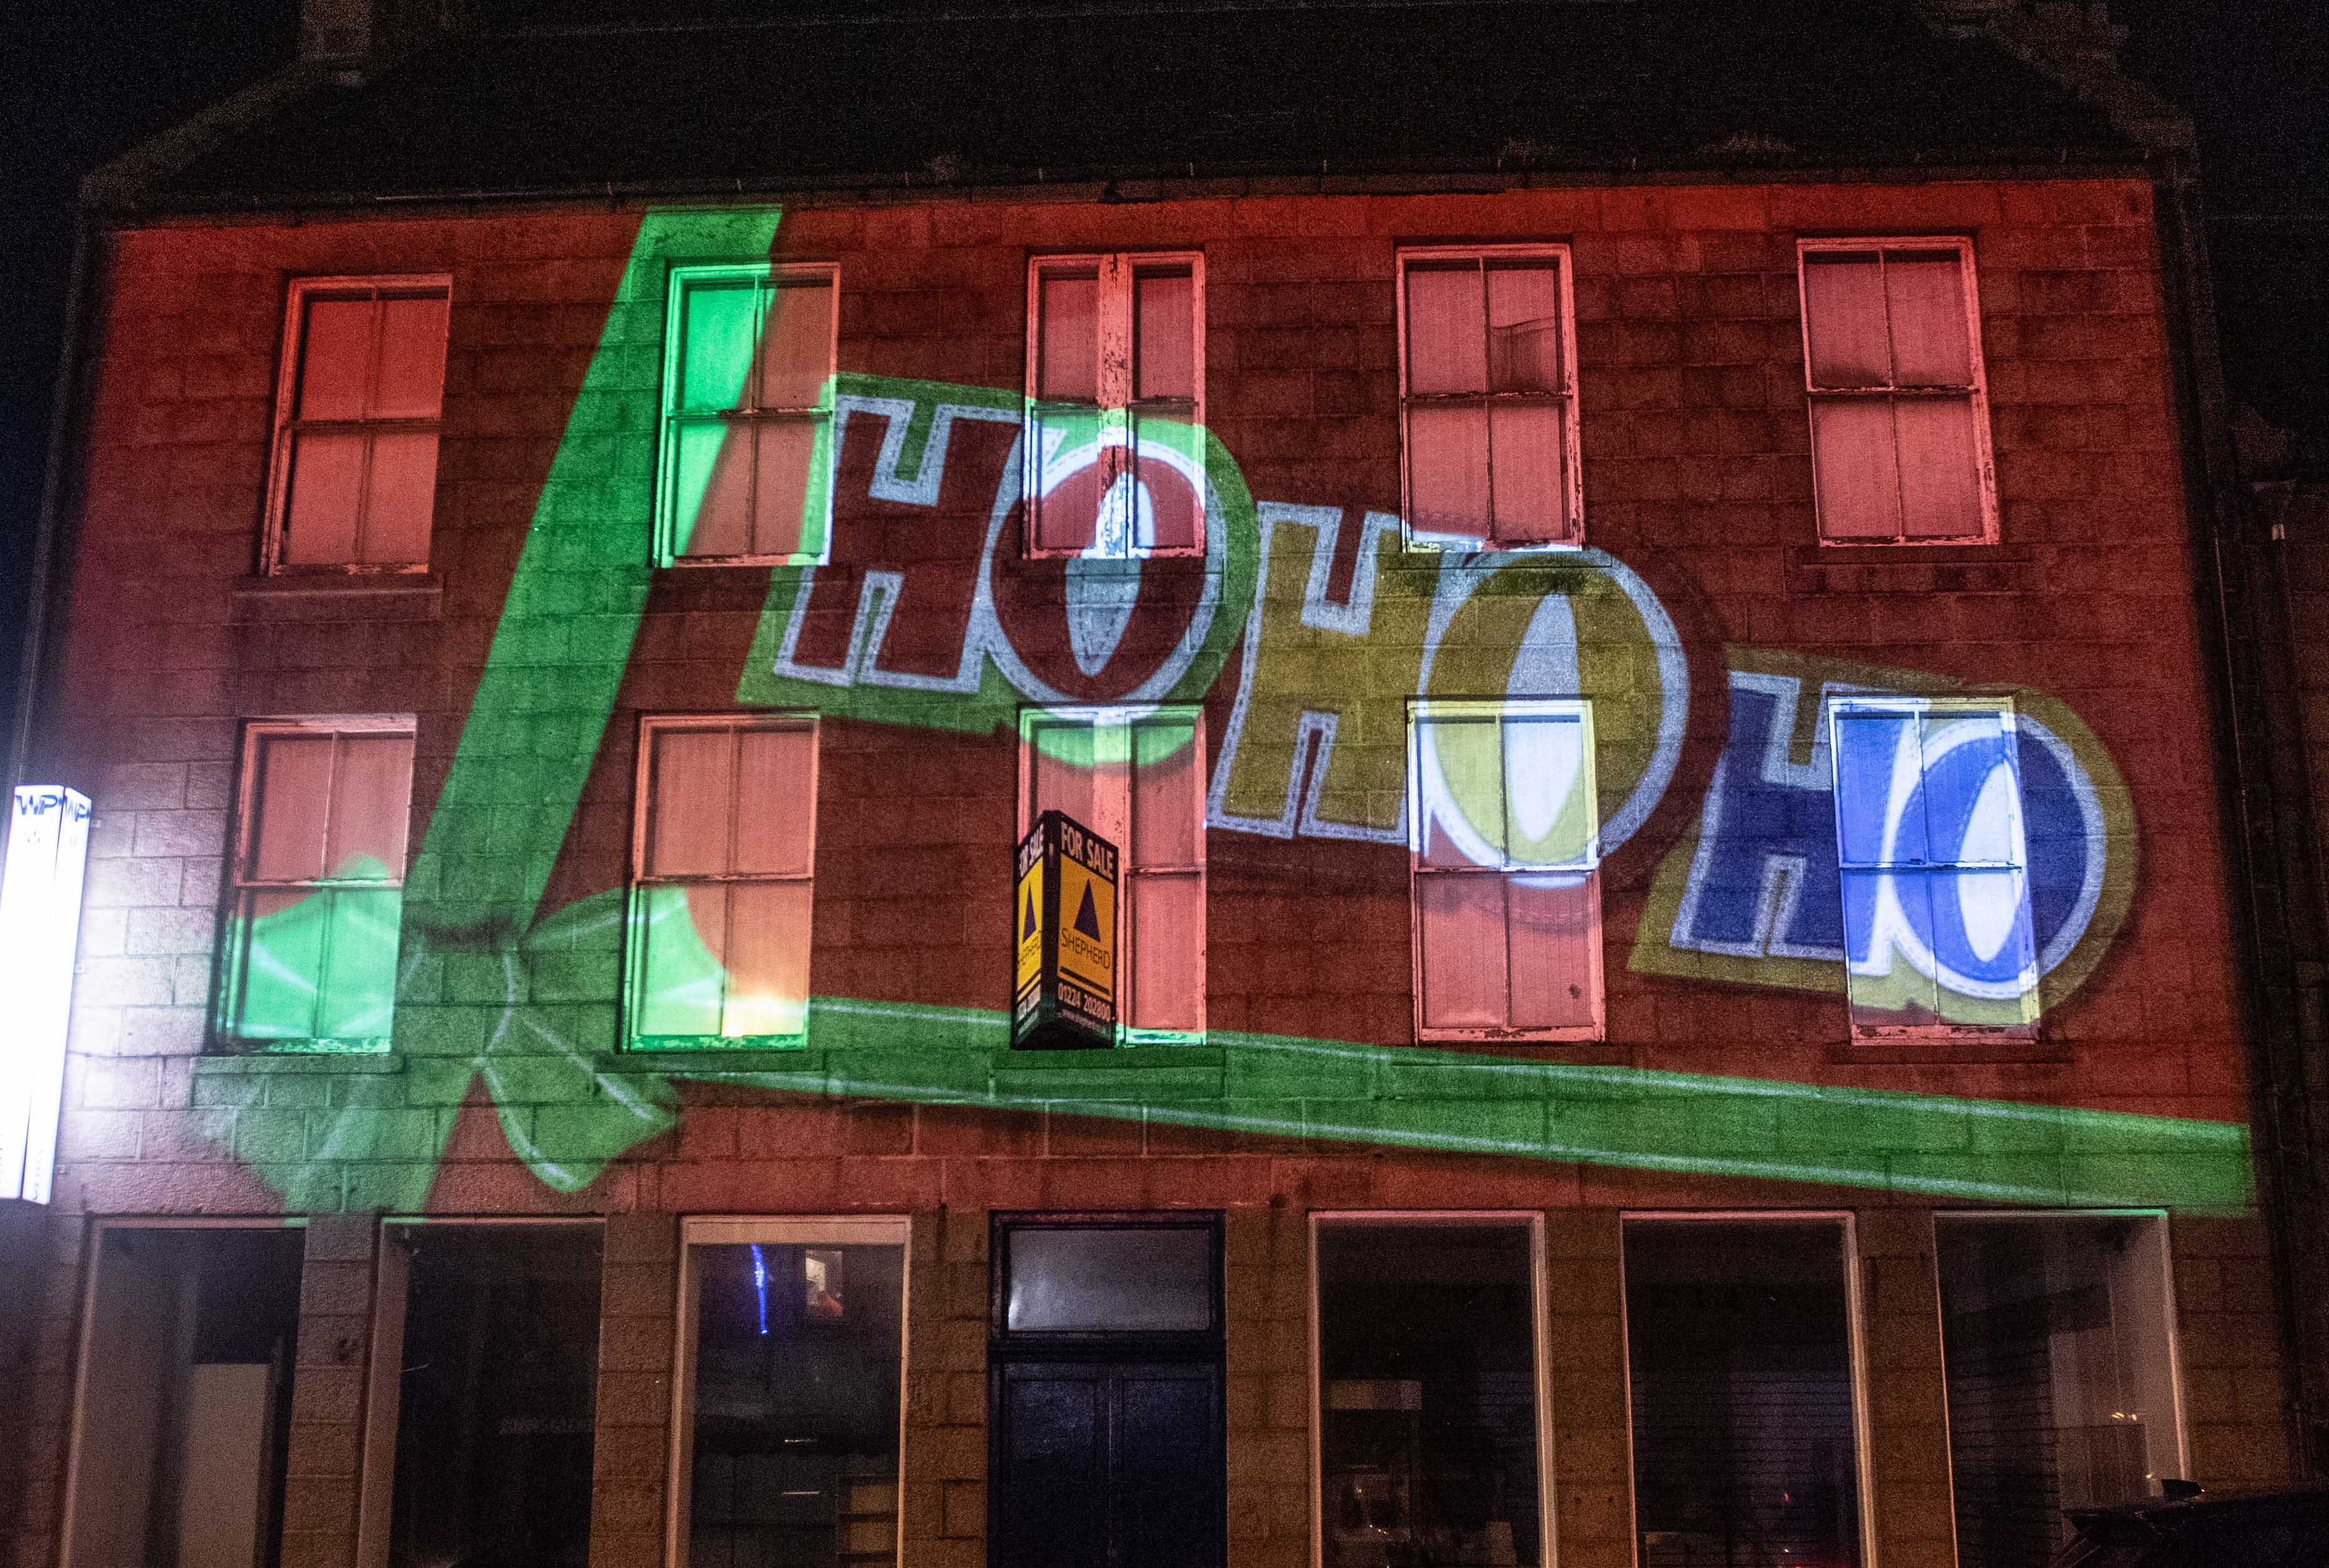 Christmas animation on Wiseman's building on Broad Street, Peterhead by Double Take Projections.  Picture by Abermedia / Michal Wachucik